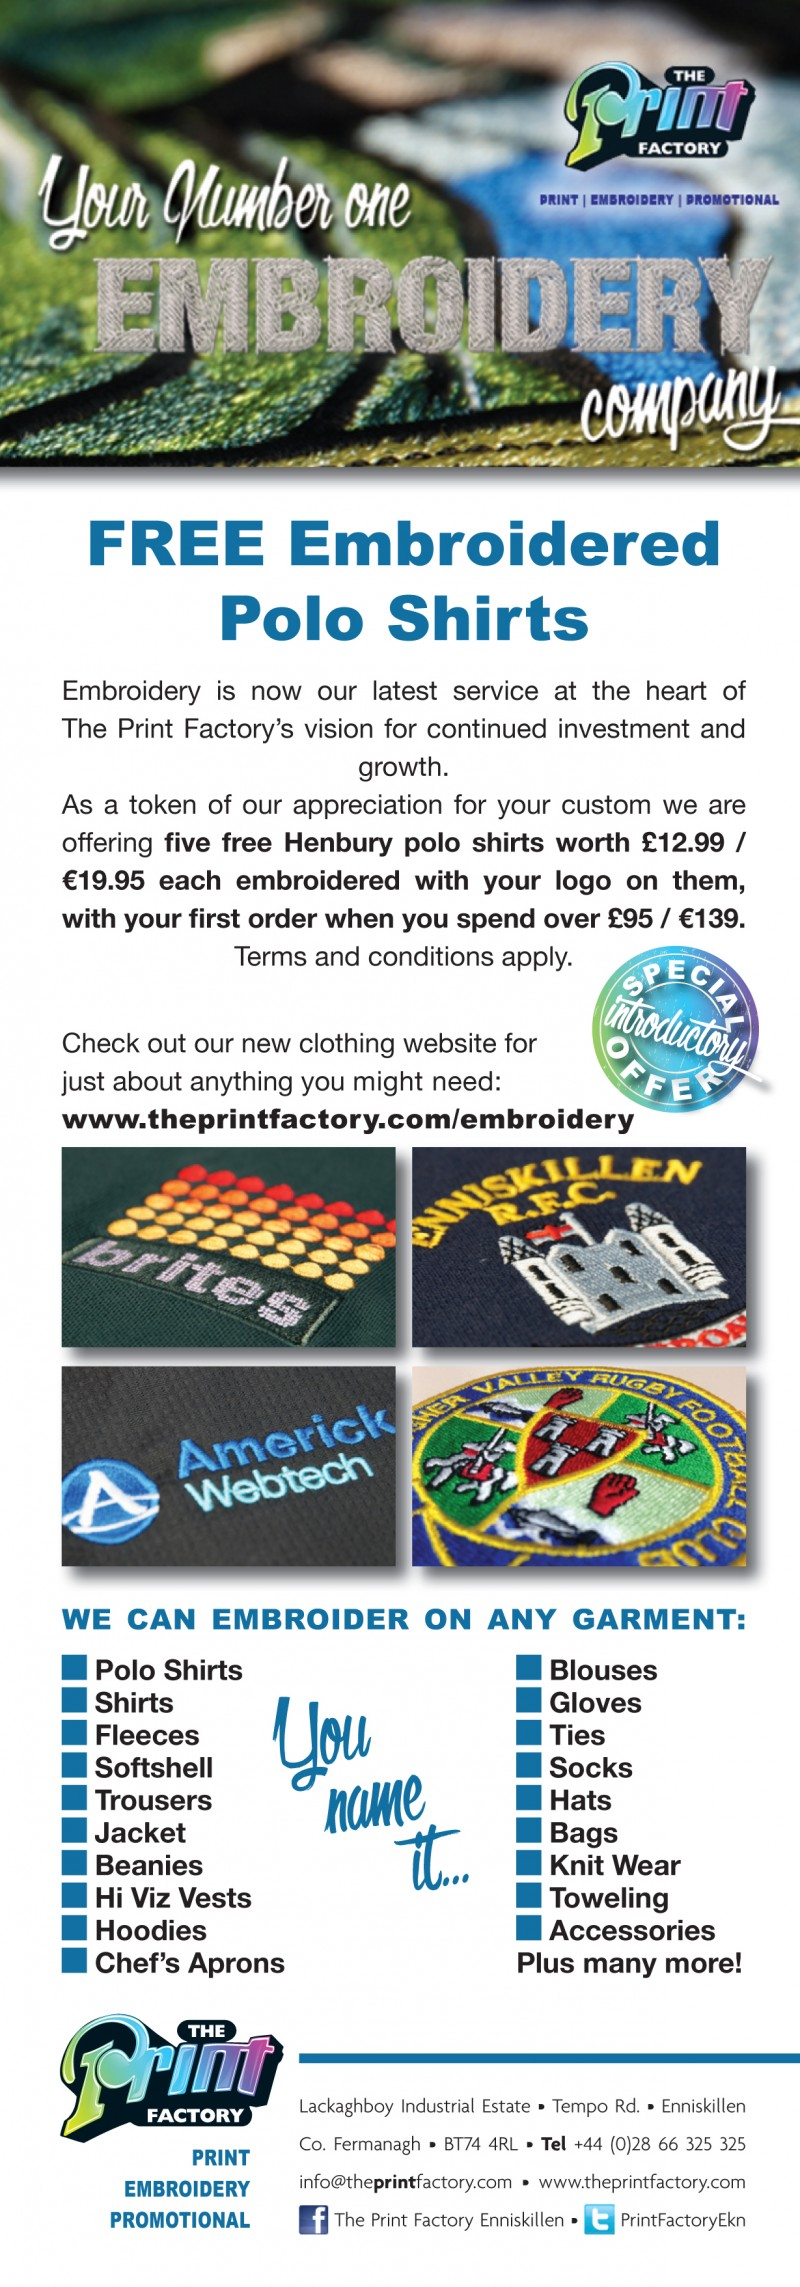 0005 Flyer Embroidery x6-1